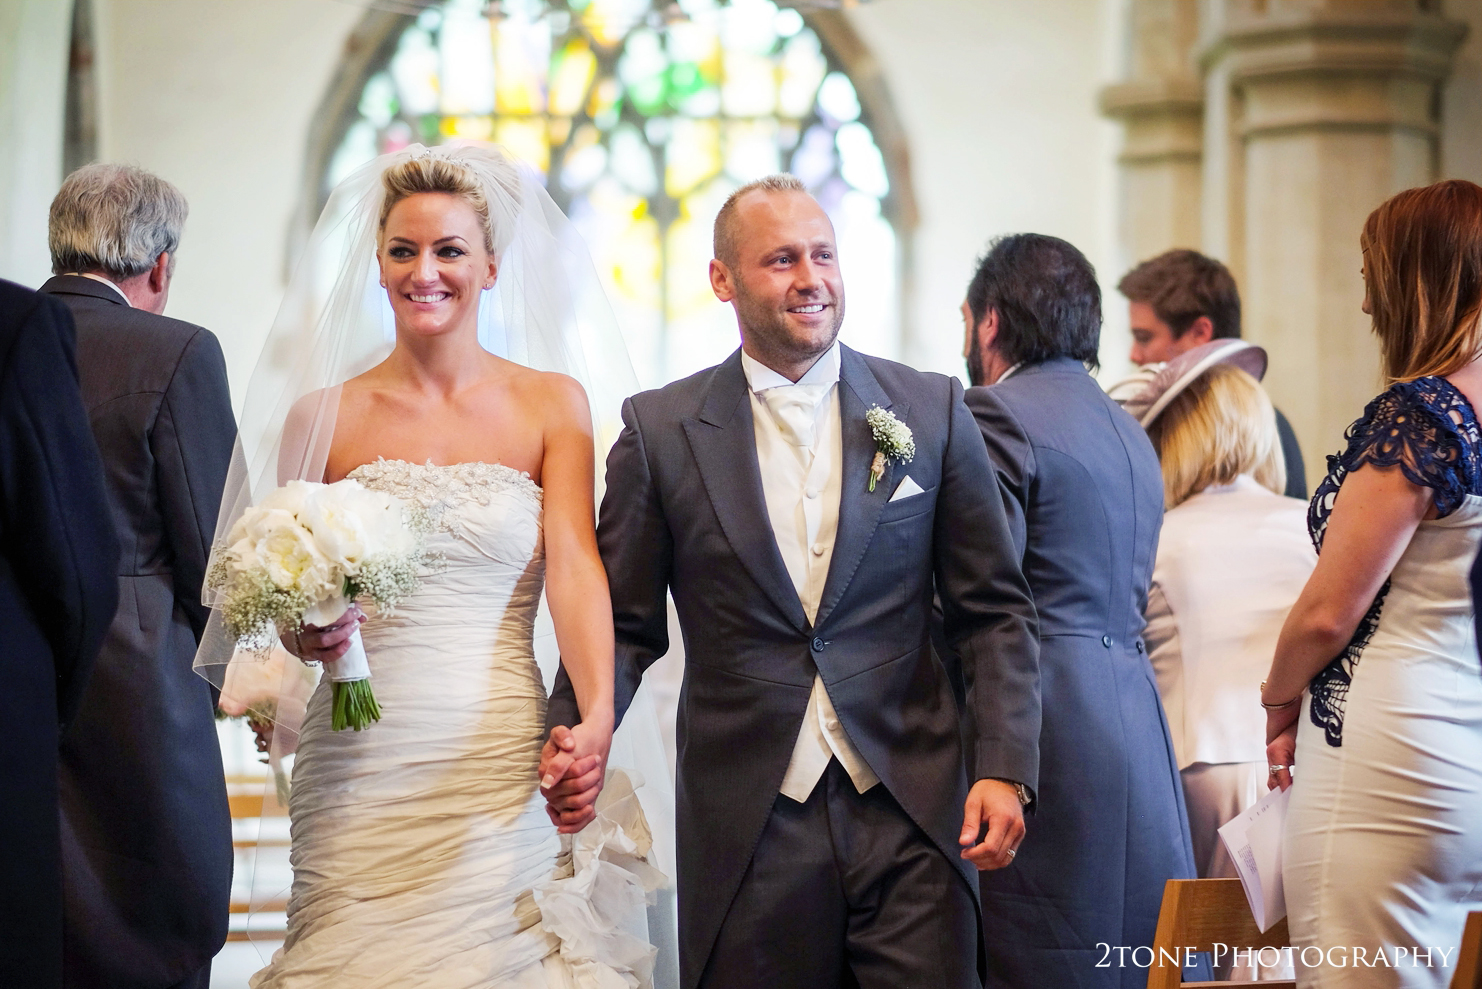 leaving church at St Brandon's church, Brancepeth, Durham.  Wedding photography by www.2tonephotography.co.uk